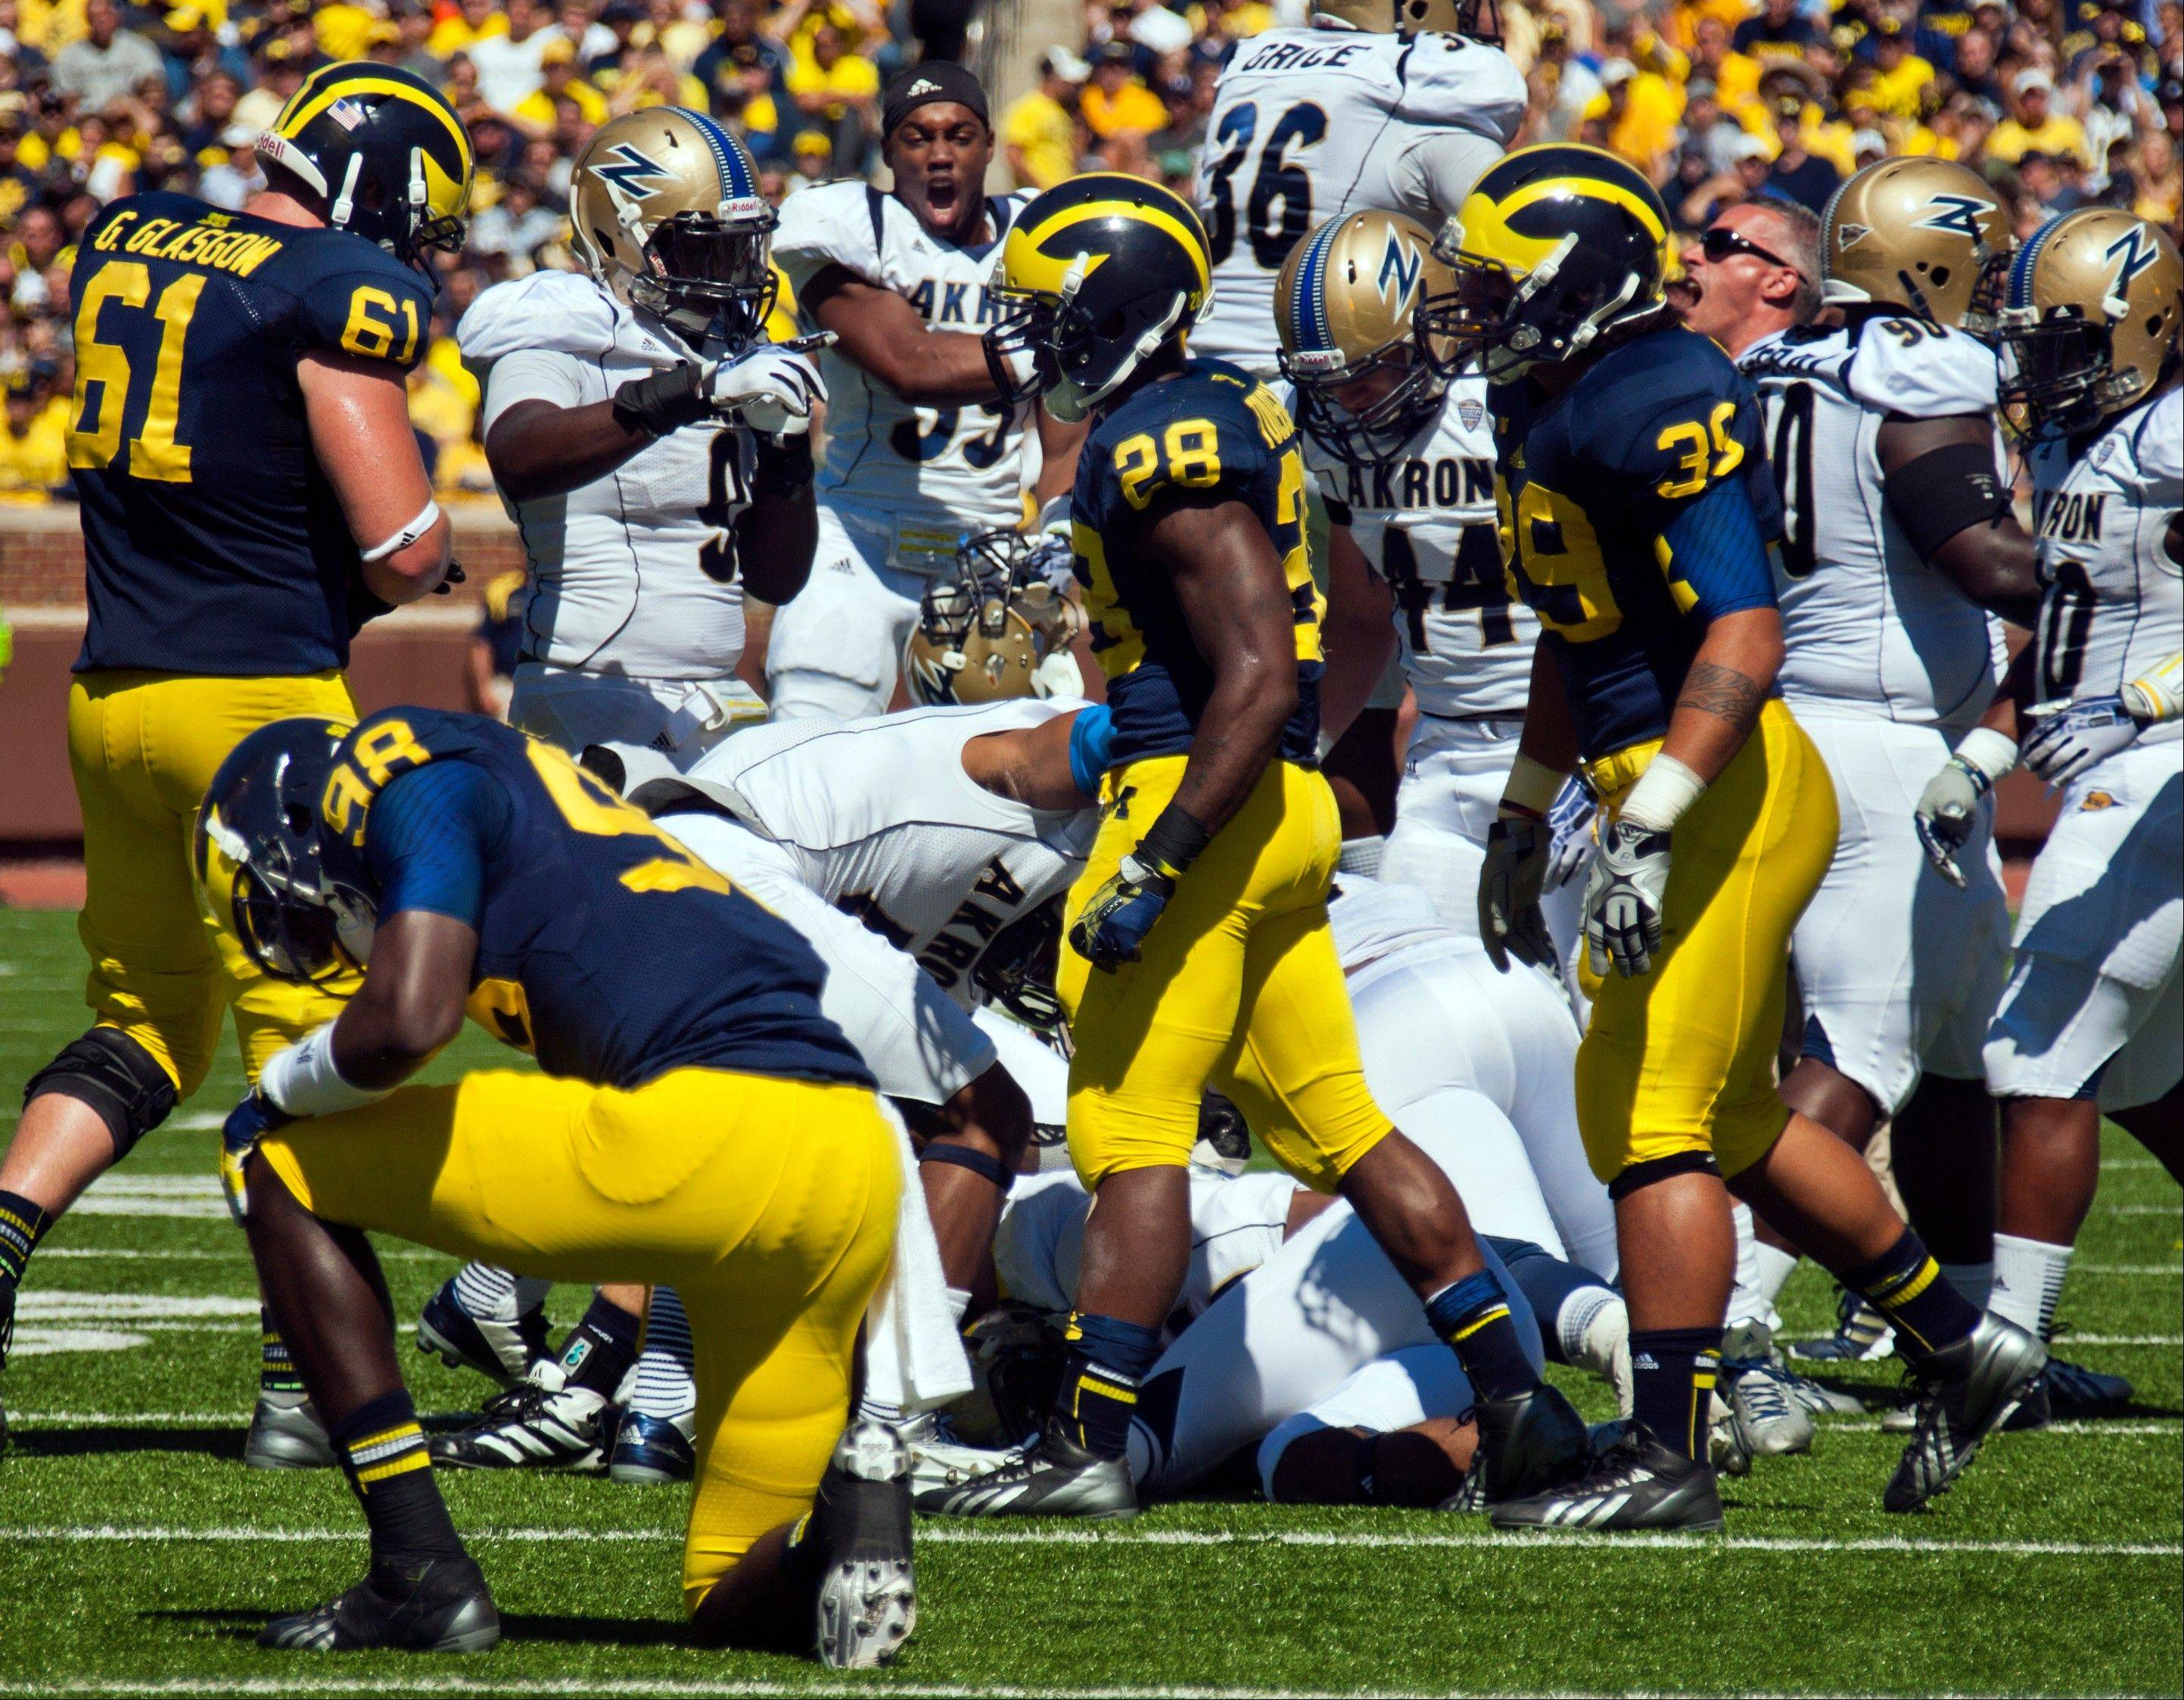 Michigan quarterback Devin Gardner (98) kneels on the field after fumbling the ball as Akron defenders celebrating the recovery in the second quarter of an NCAA college football game, Saturday, Sept. 14, 2013, in Ann Arbor, Mich.